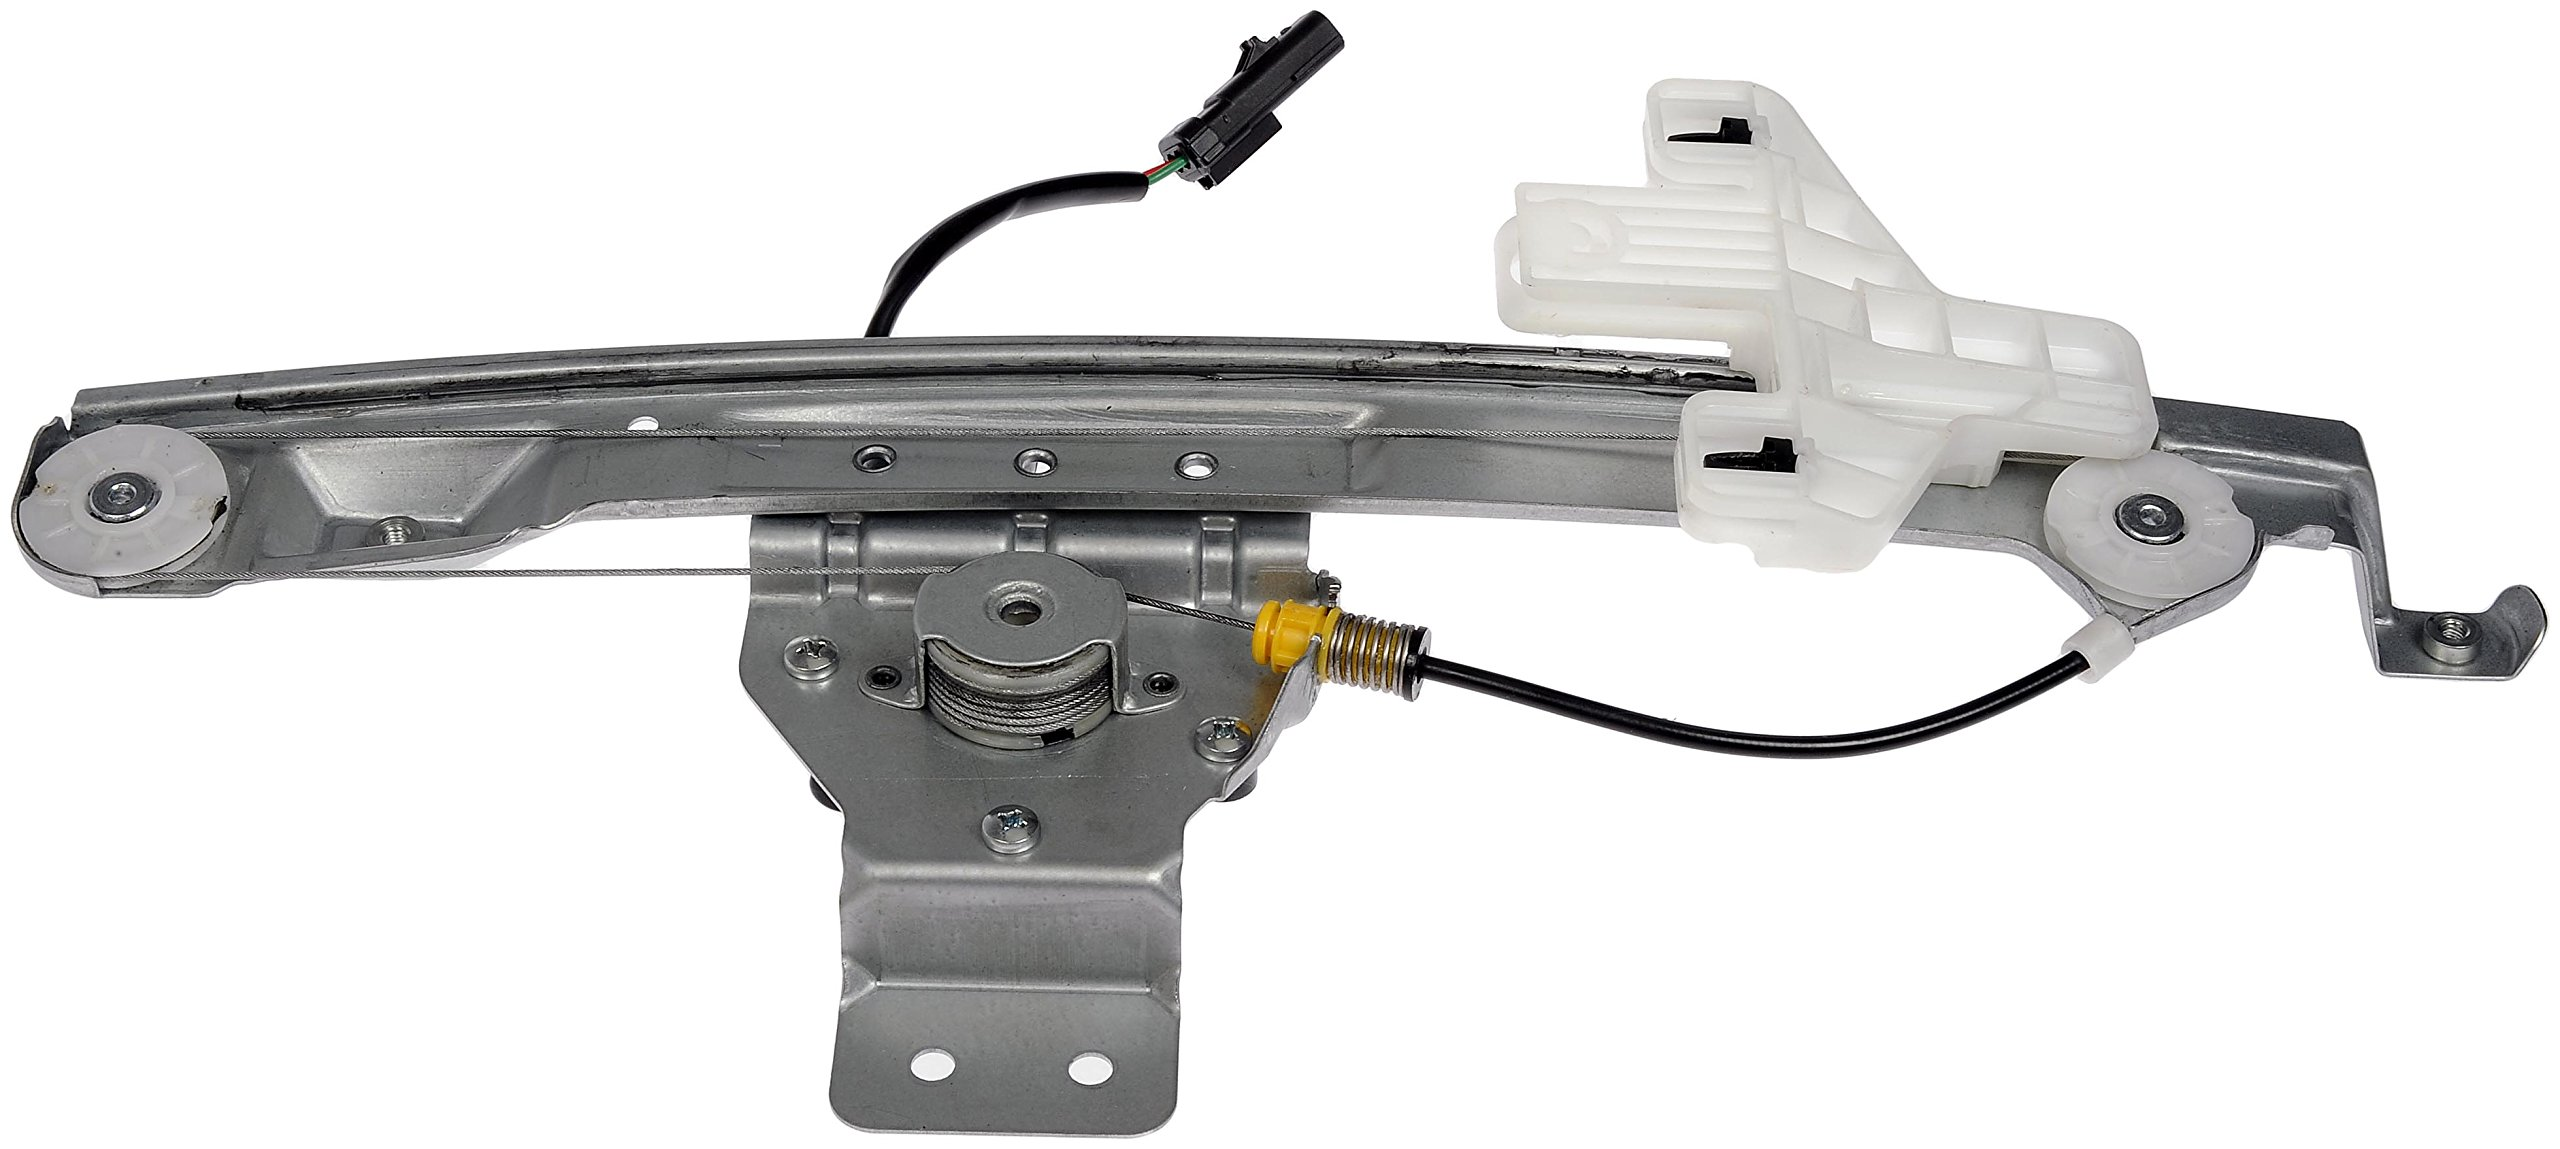 Dorman 748-538 Rear Driver Side Power Window Regulator and Motor Assembly for Select Dodge Models by Dorman